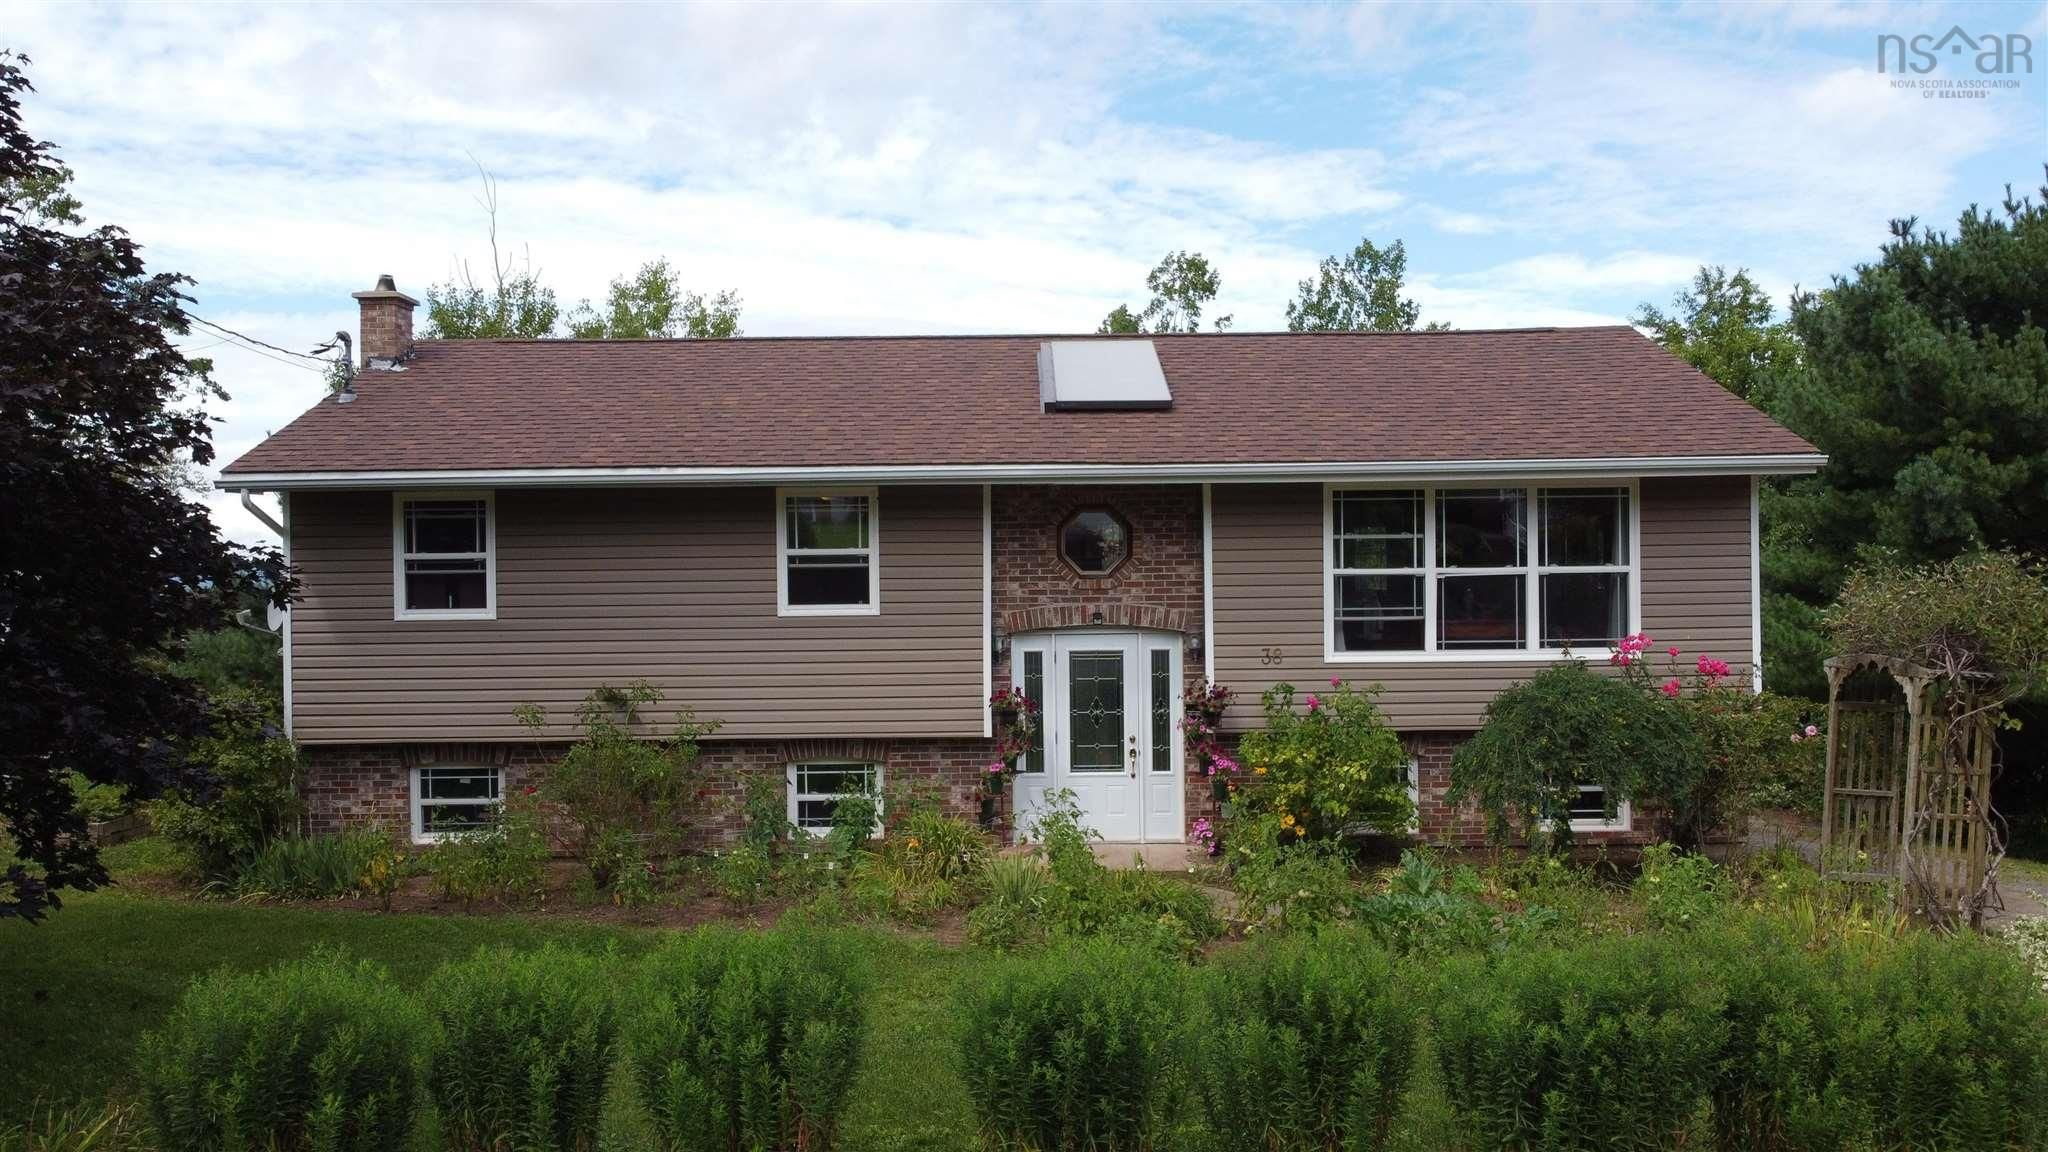 Main Photo: 38 Cloverleaf Drive in New Minas: 404-Kings County Residential for sale (Annapolis Valley)  : MLS®# 202122099